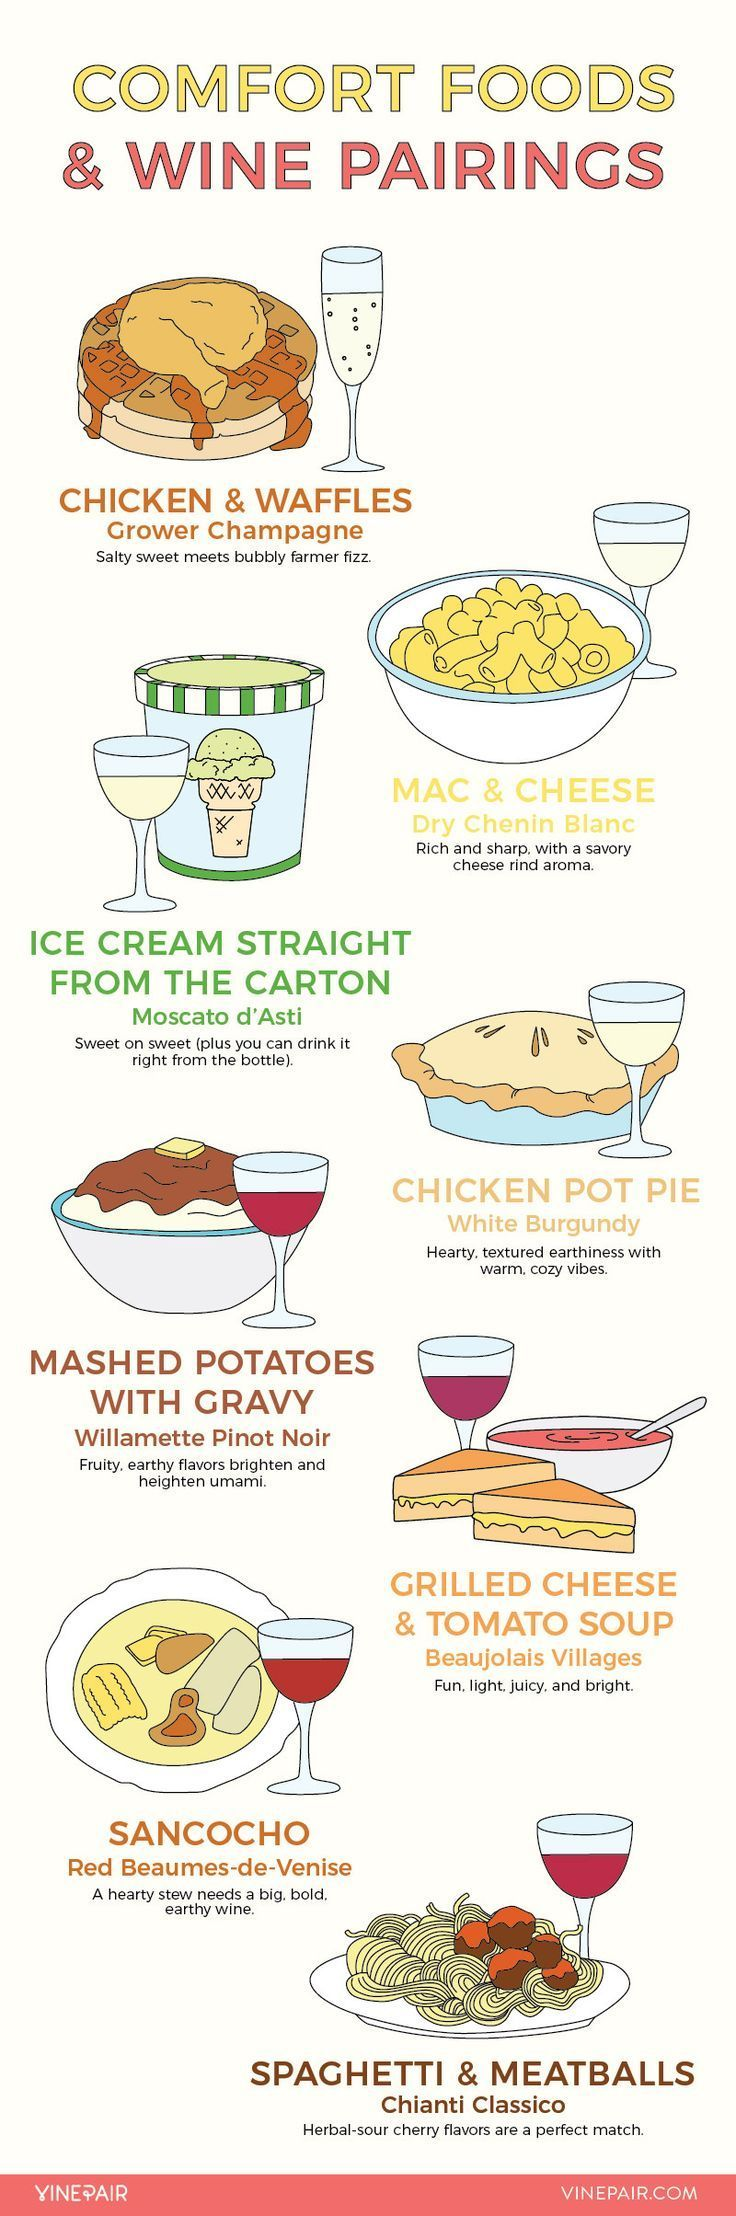 Comfort Foods & Wine Pairings - Regardless of temperature, 'tis the season to don cardigans, contemplate pumpkins, and reach for hearty, rib-sticking fare. {wine glass writer}